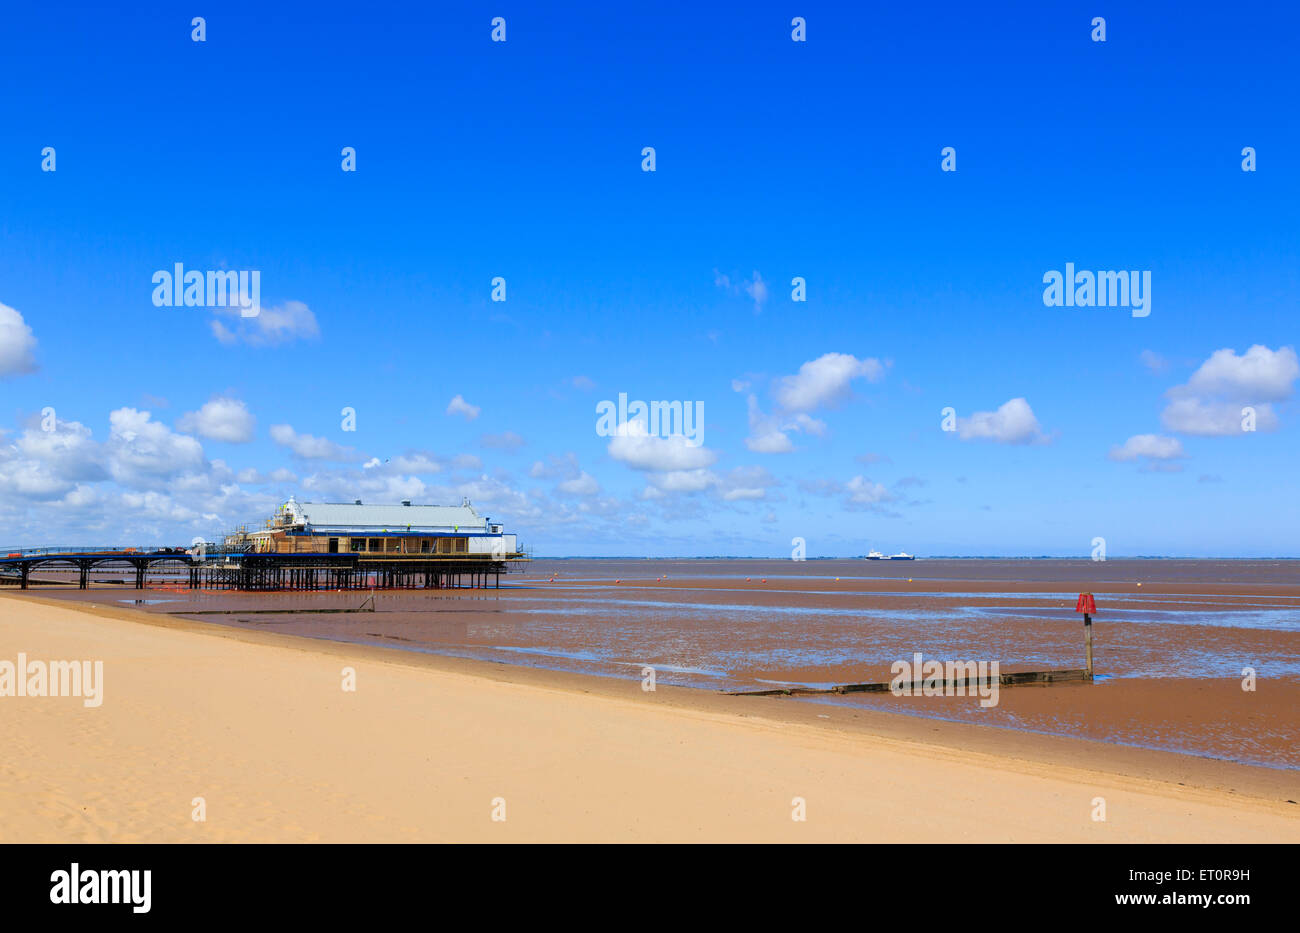 Cleethorpes pier and beach - Stock Image